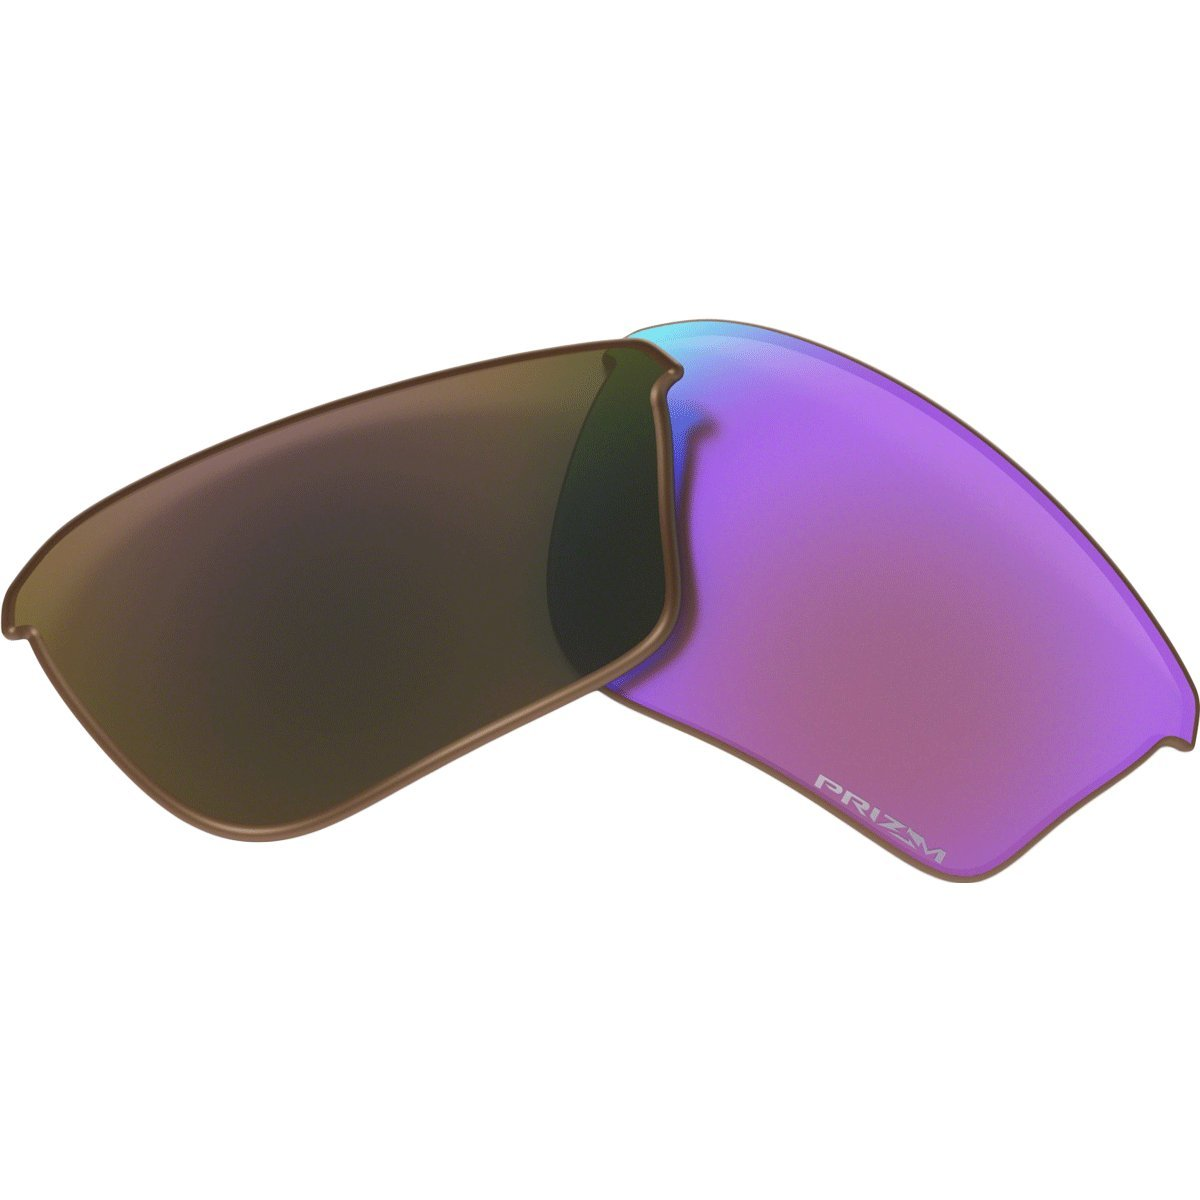 278974a32a Oakley Half Jacket 2.0 XL Adult Replacement Lens - Prizm Golf One Size at  Amazon Men s Clothing store